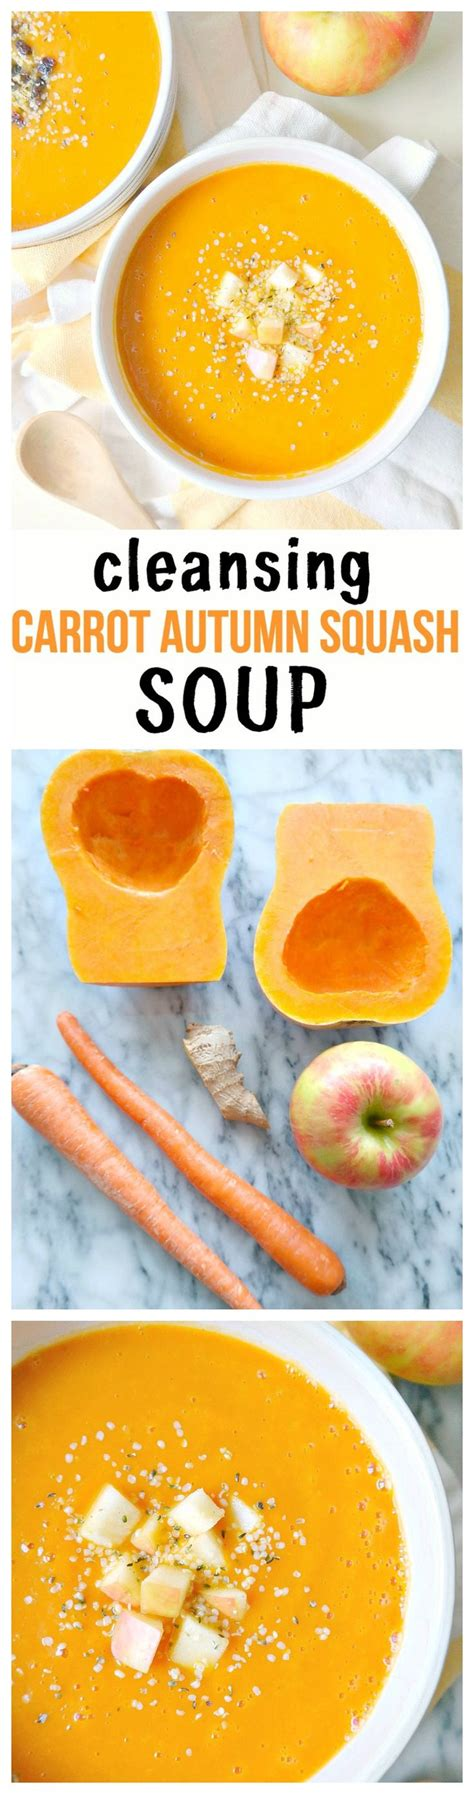 Vegan Gluten Free Detox Cleanse by 329 Best The Glowing Fridge Images On